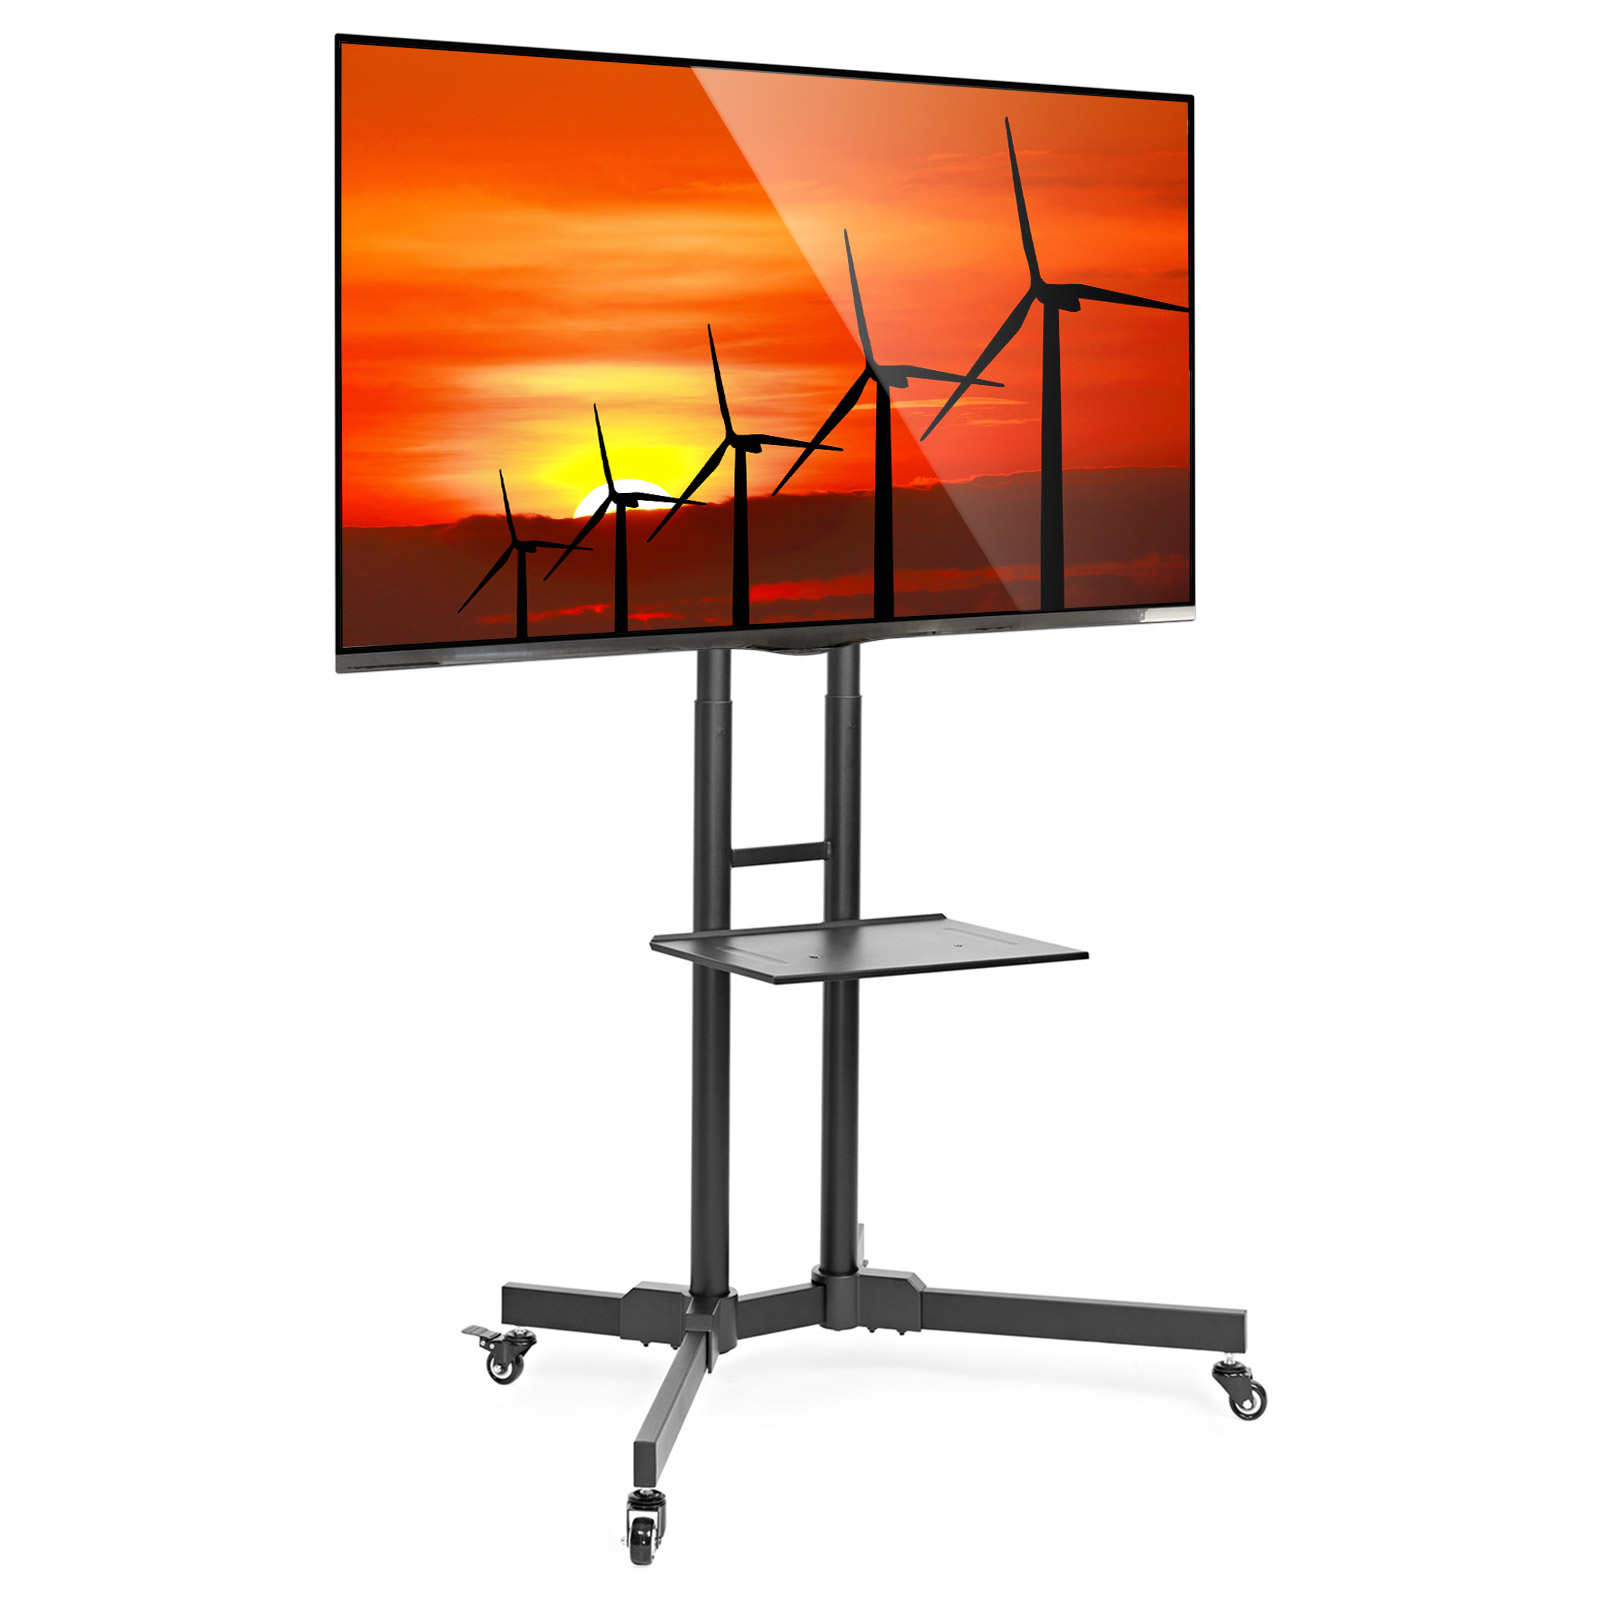 Mount Factory Rolling Tv Stand Mobile Tv Cart For 32 65 Inch Plasma